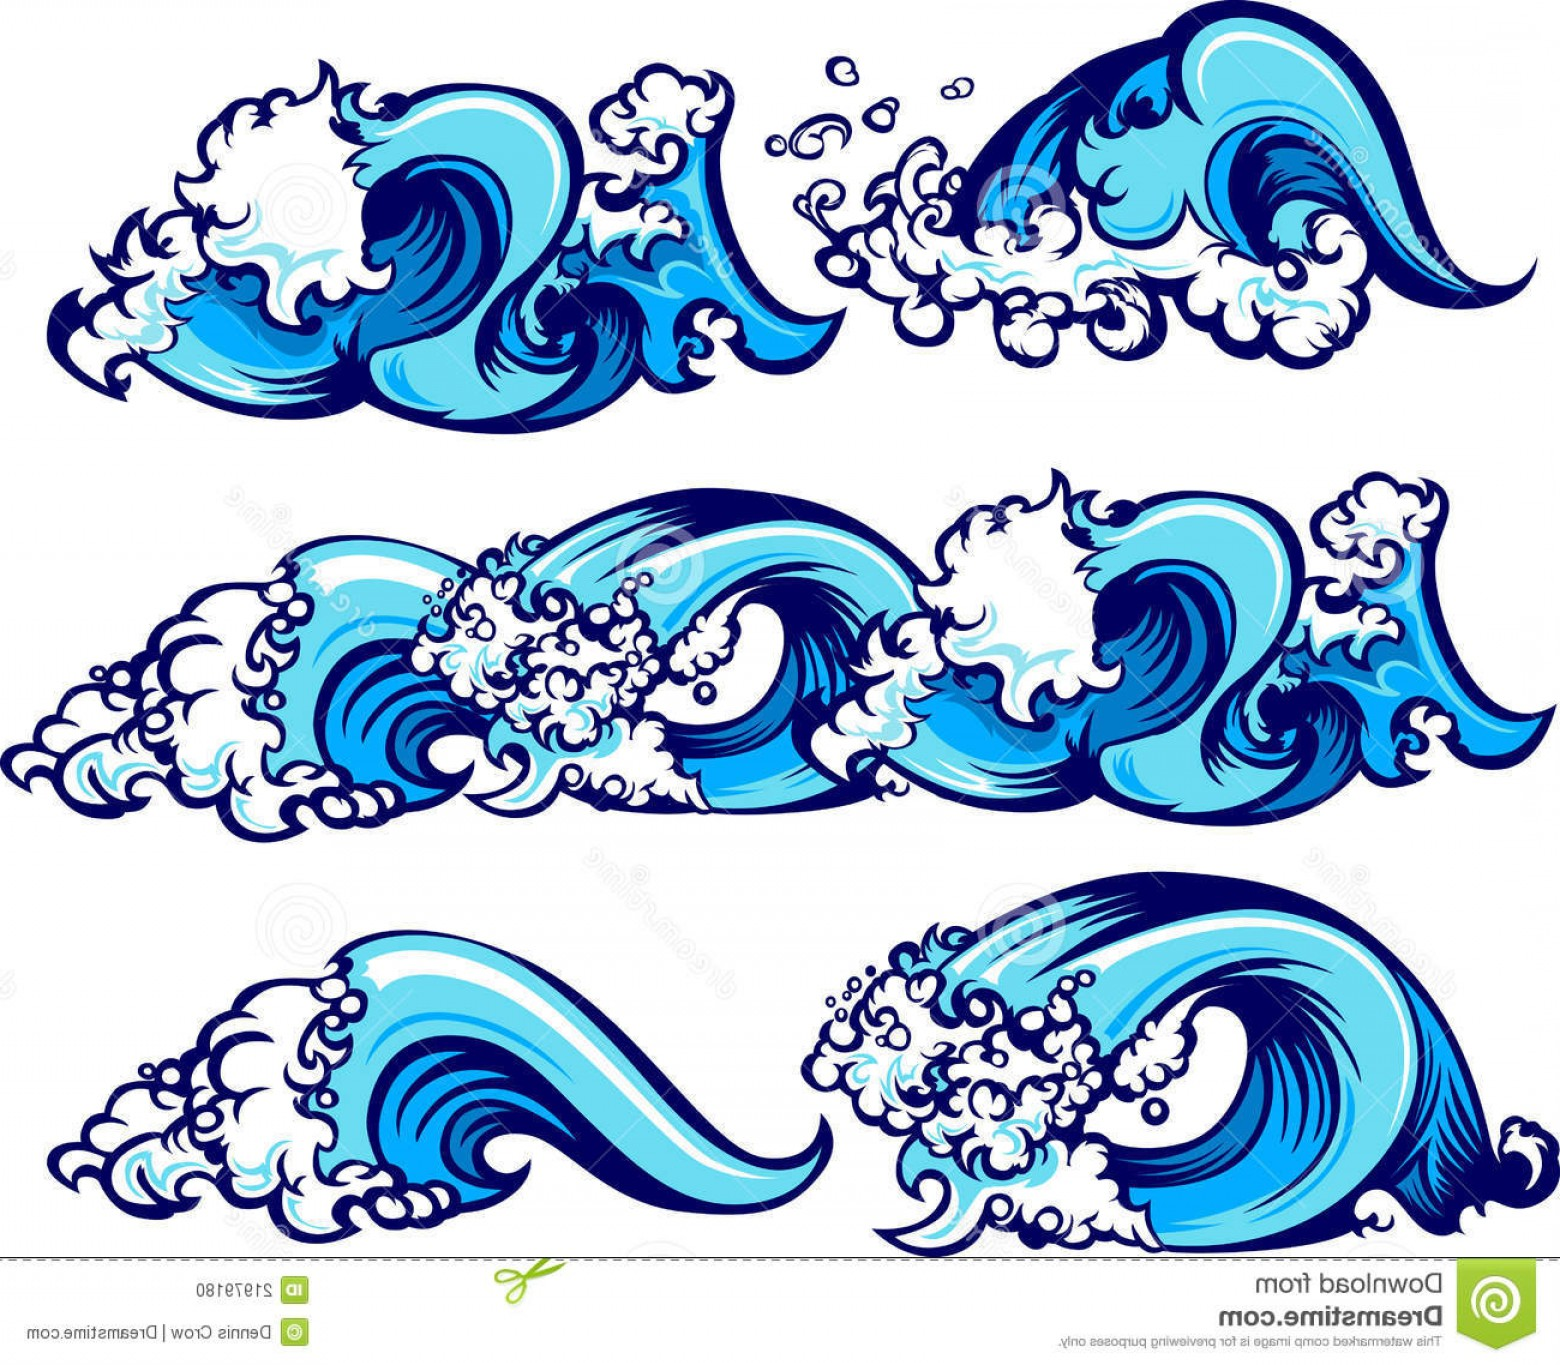 Ocean Wave Vector Illustration: Stock Photo Crashing Water Waves Vector Illustrations Image